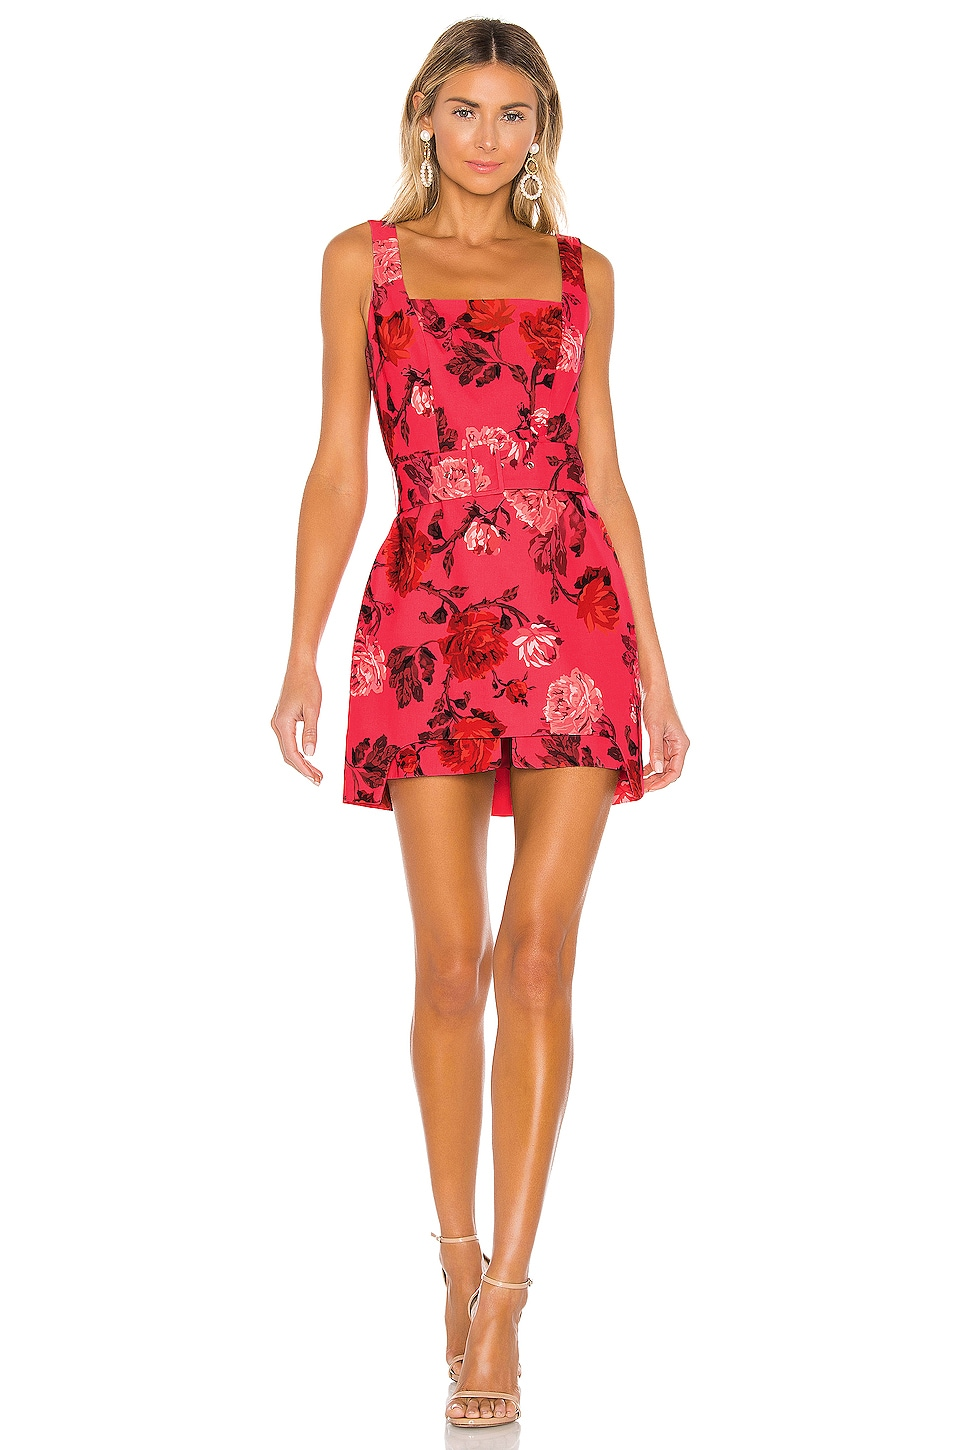 C/MEO Variation Mini Dress in Hot Pink Rose